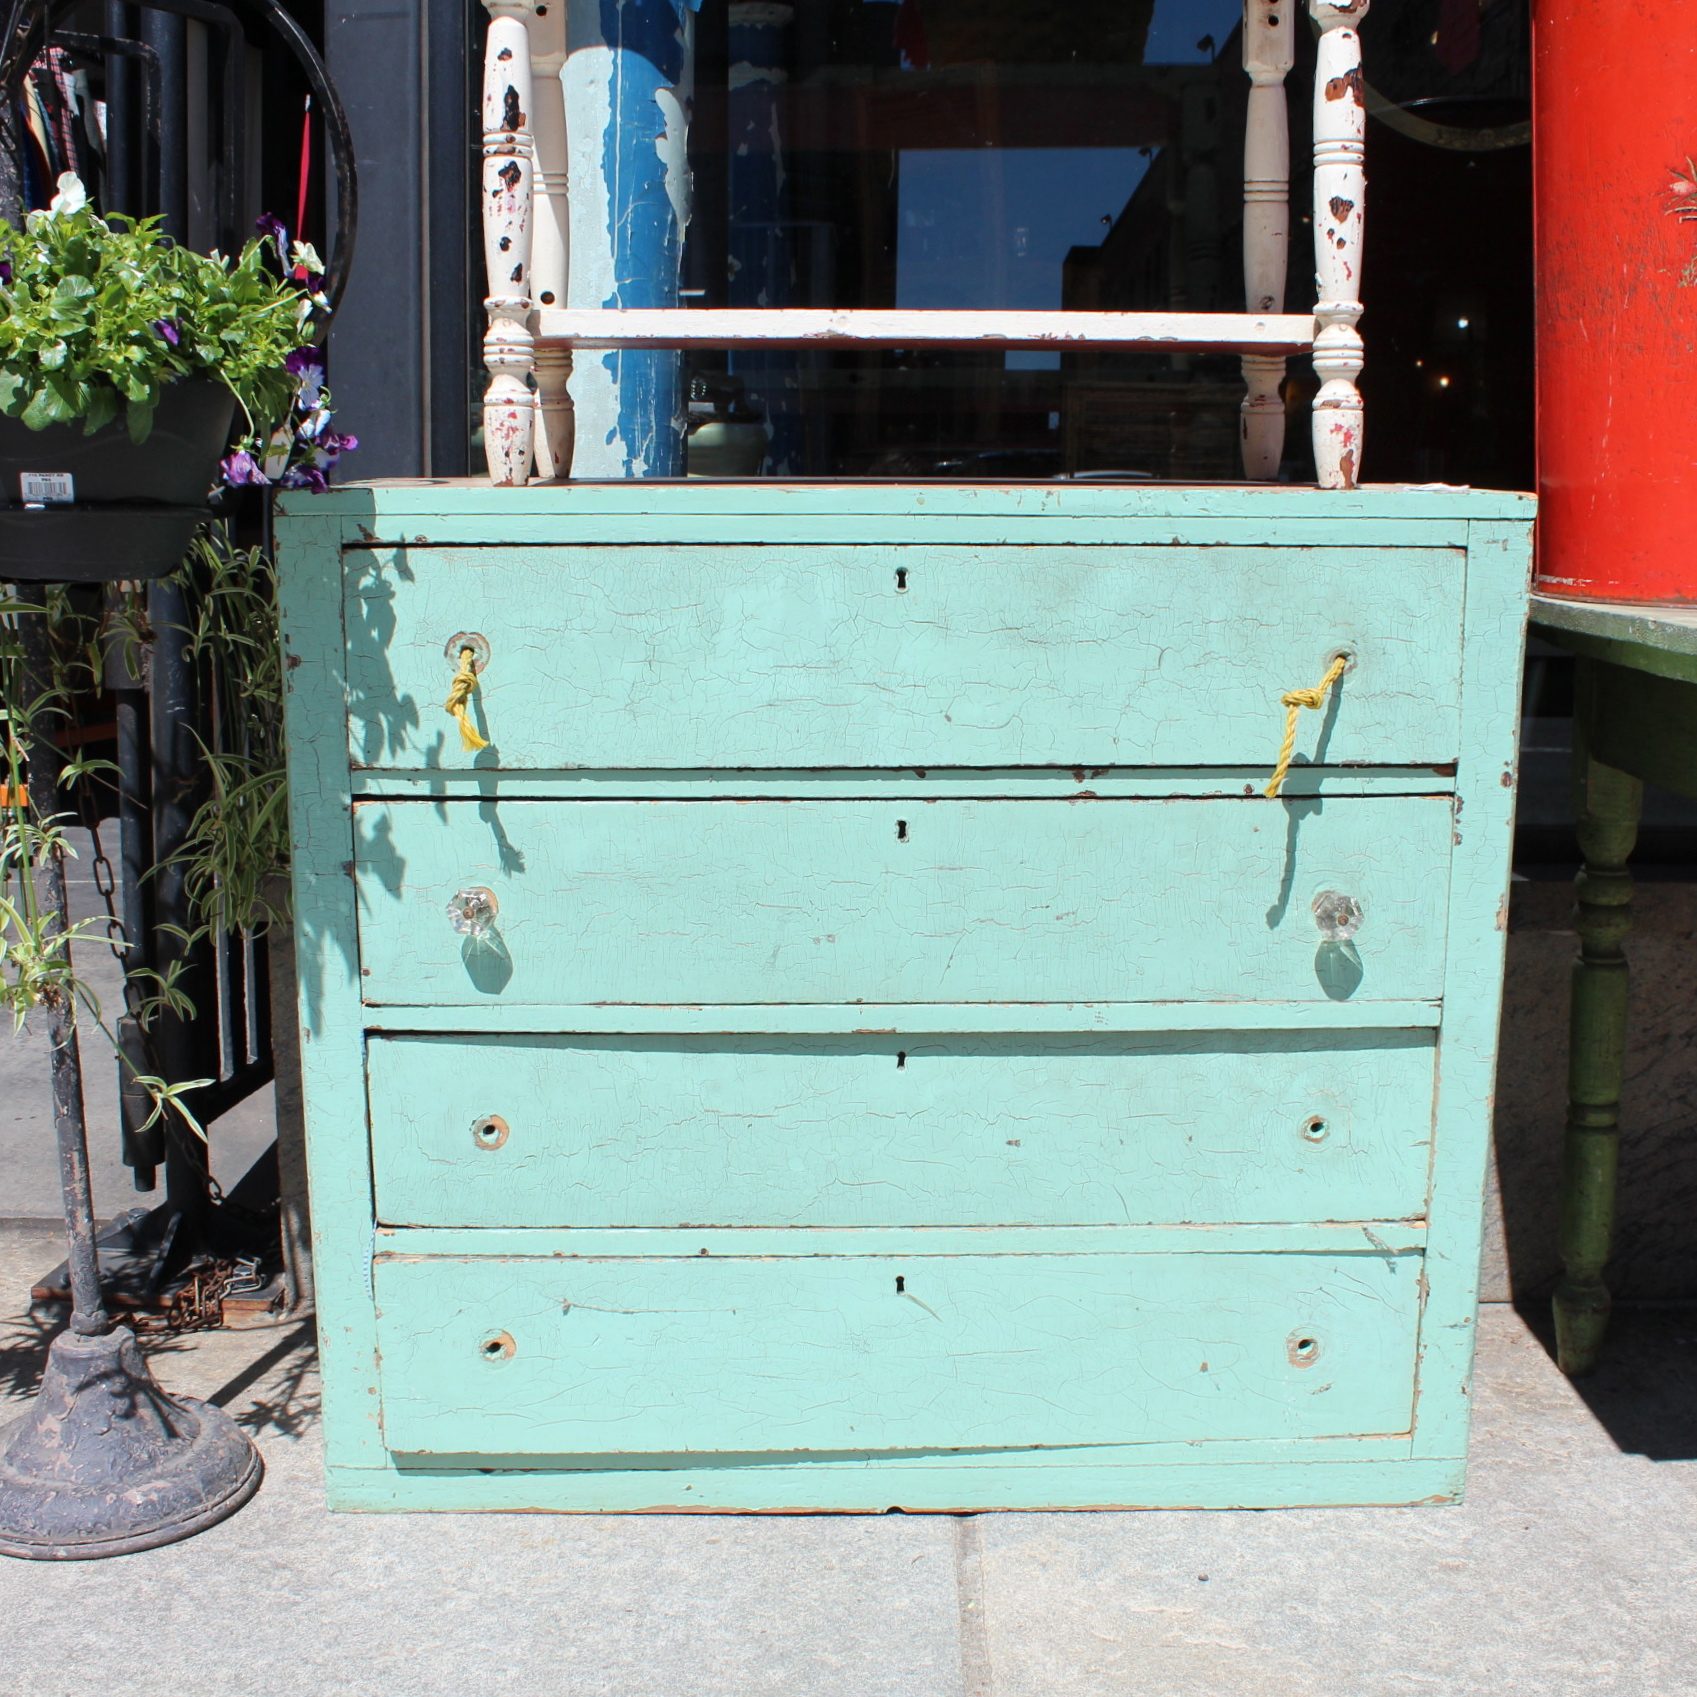 New Teal Chest of Drawers